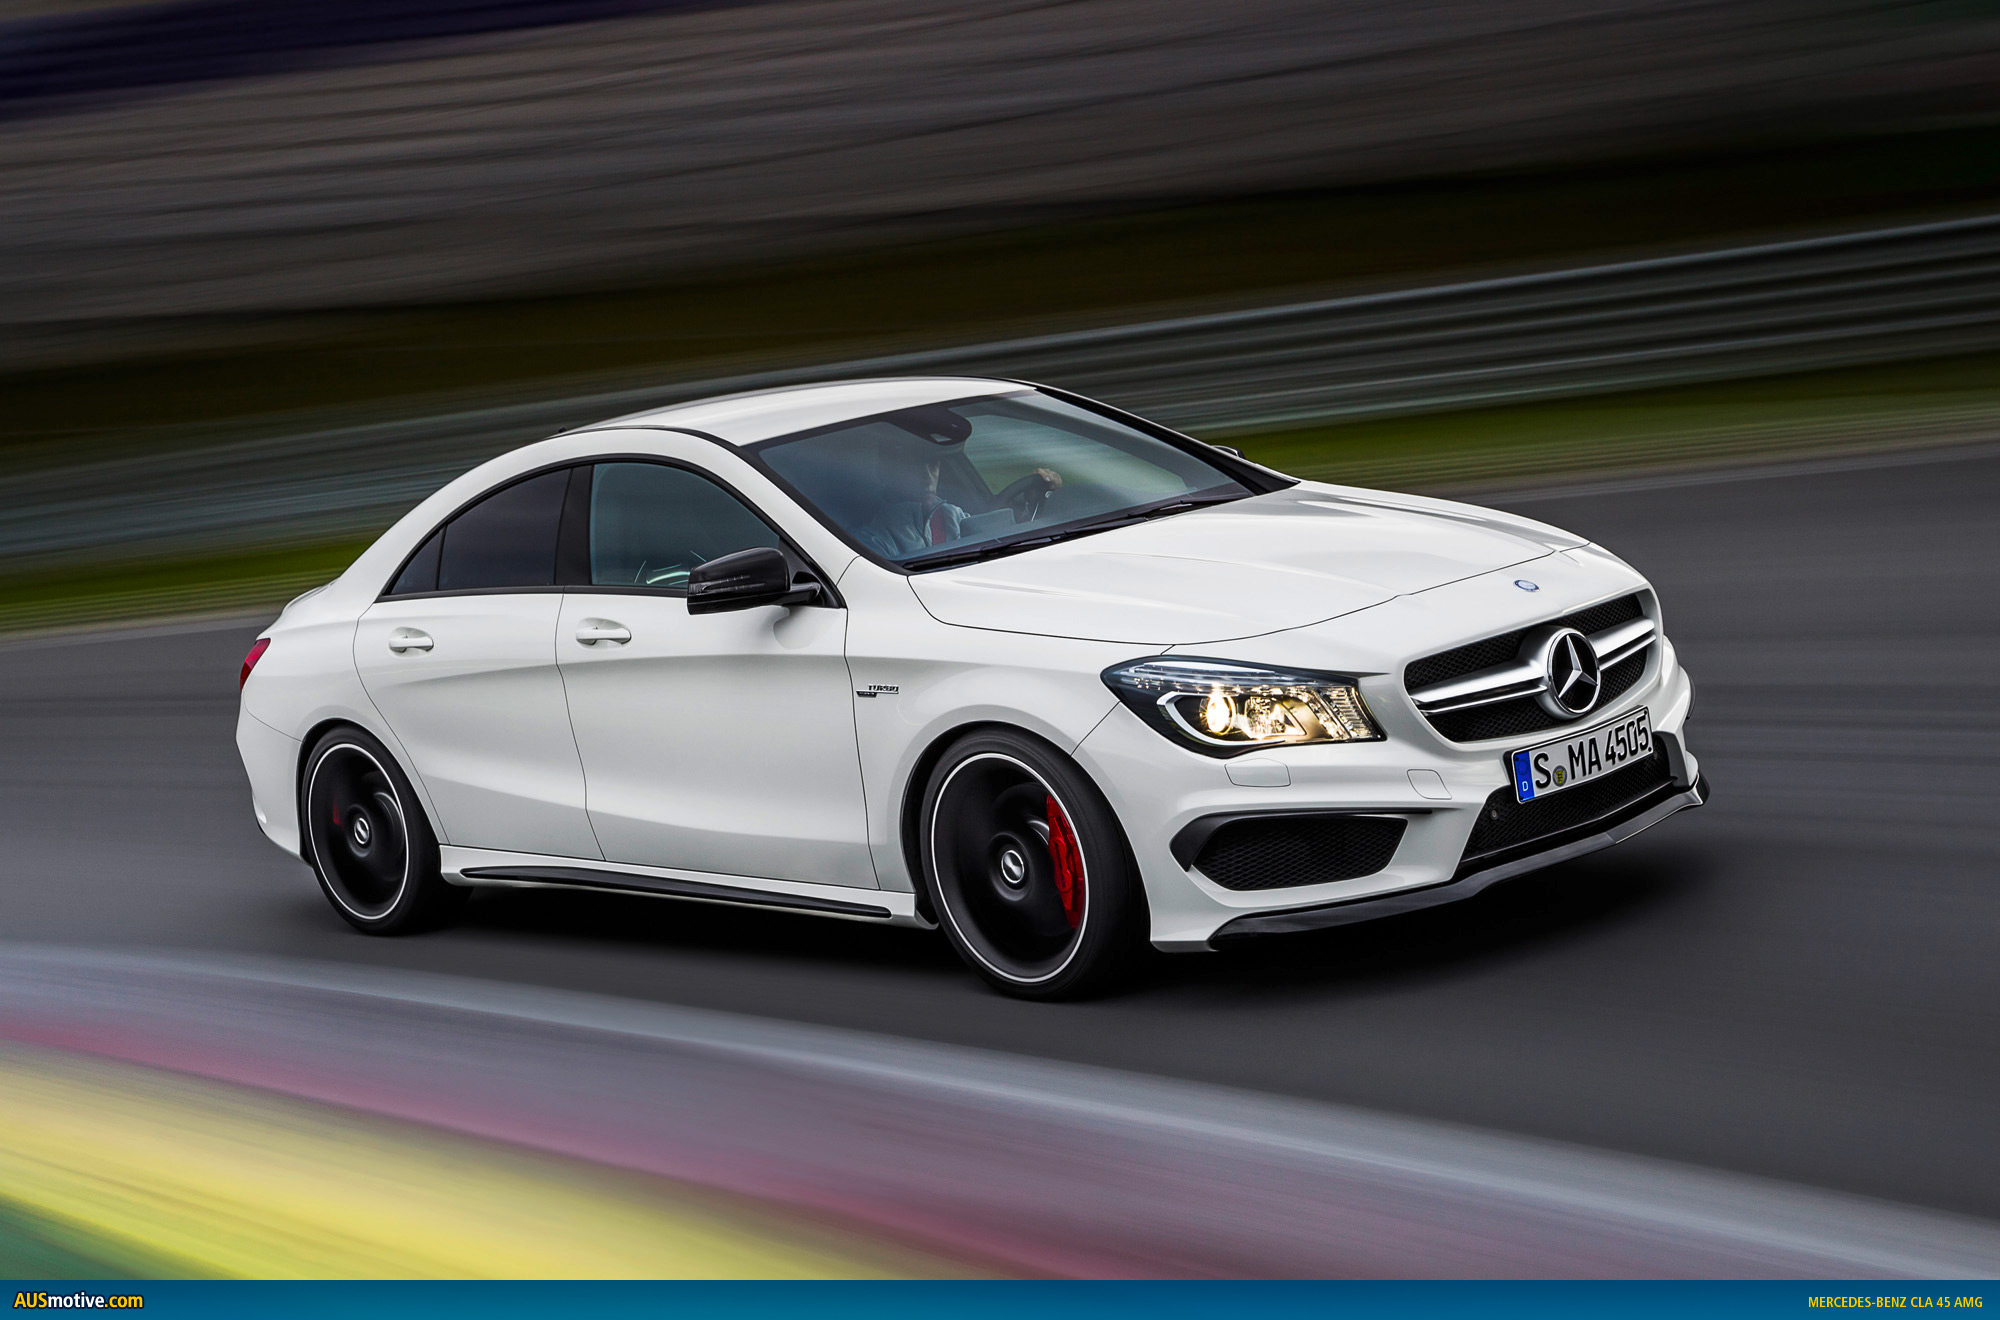 April: Mercedes-Benz Australia/Pacific has confirmed the CLA 45 AMG